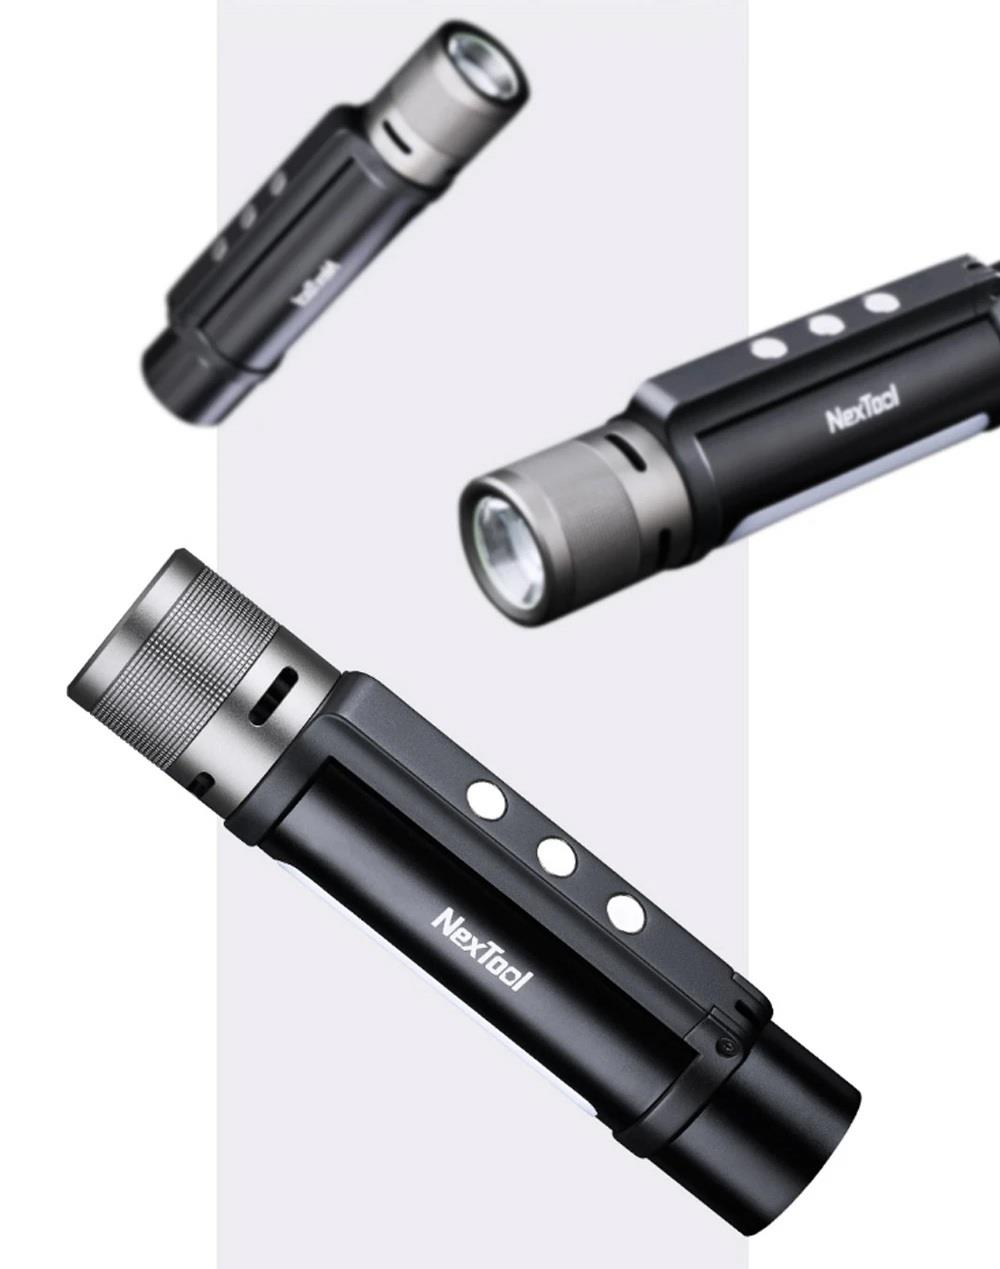 Nextool Outdoor Portable 6-in-1 LED Flashlight 1000 Lumens Lens Telescopic Focusing One-click Alert USB Charging IPX4 Waterproof From Xiaomi Youpin - Black